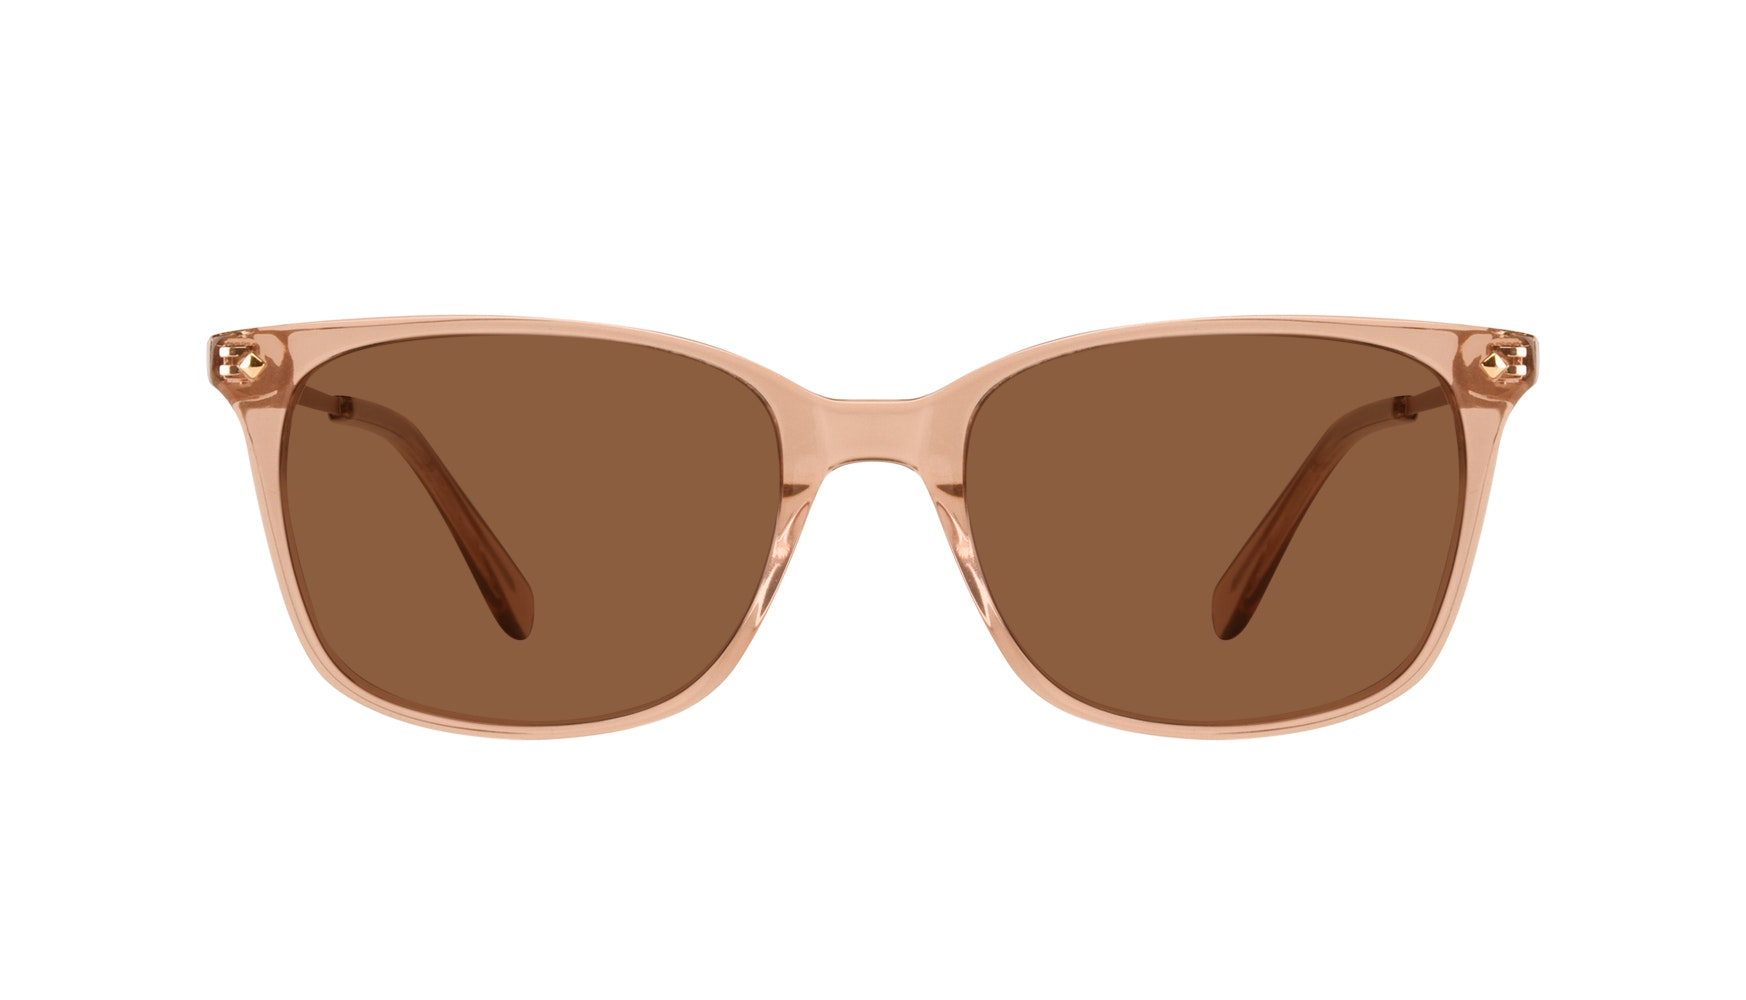 Affordable Fashion Glasses Rectangle Square Sunglasses Women Refine Toffee